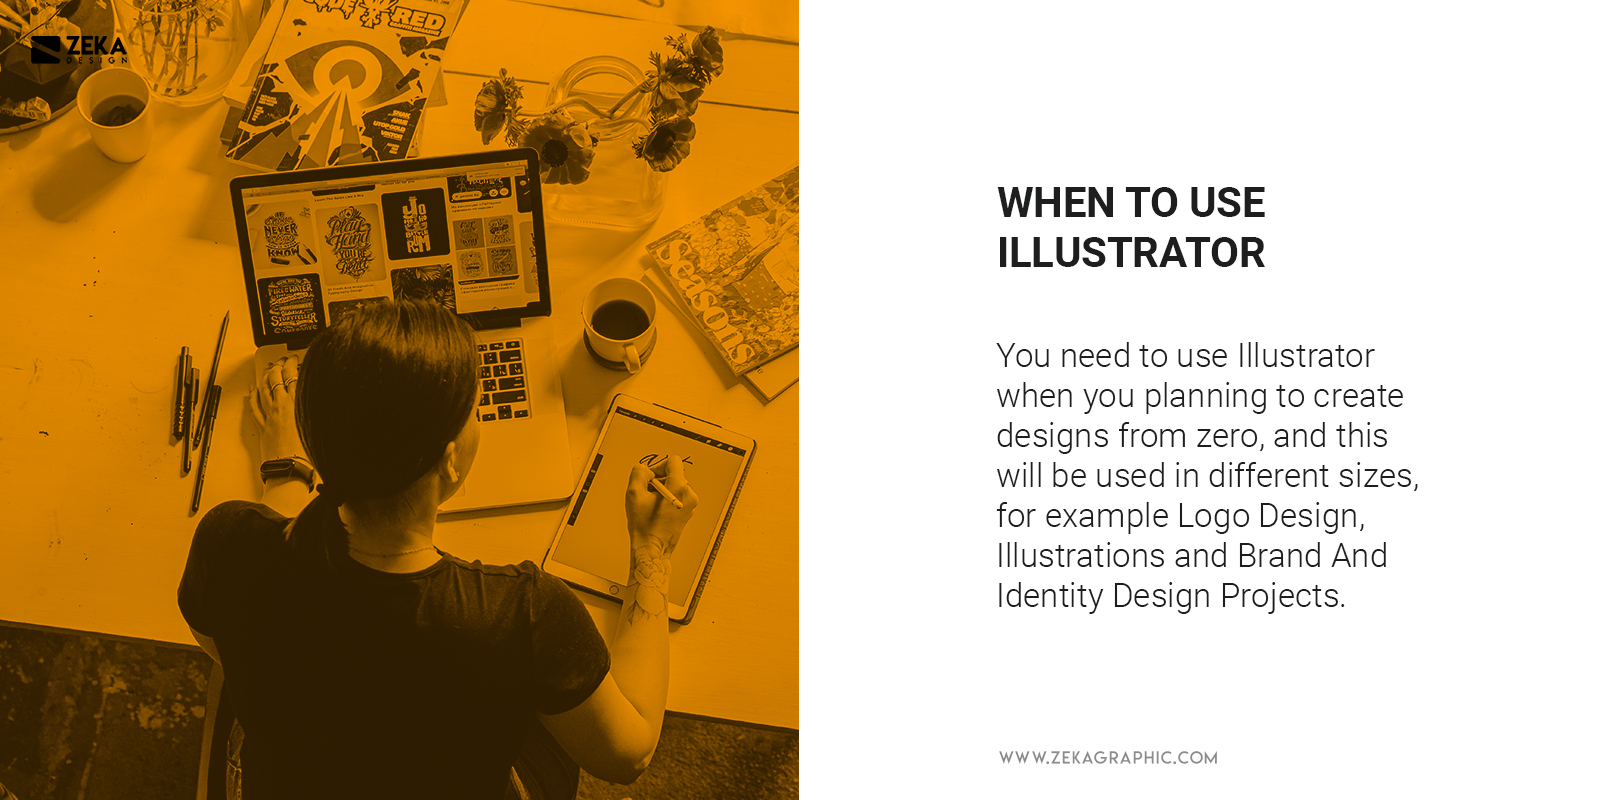 When To Use Illustrator for graphic design and logo design